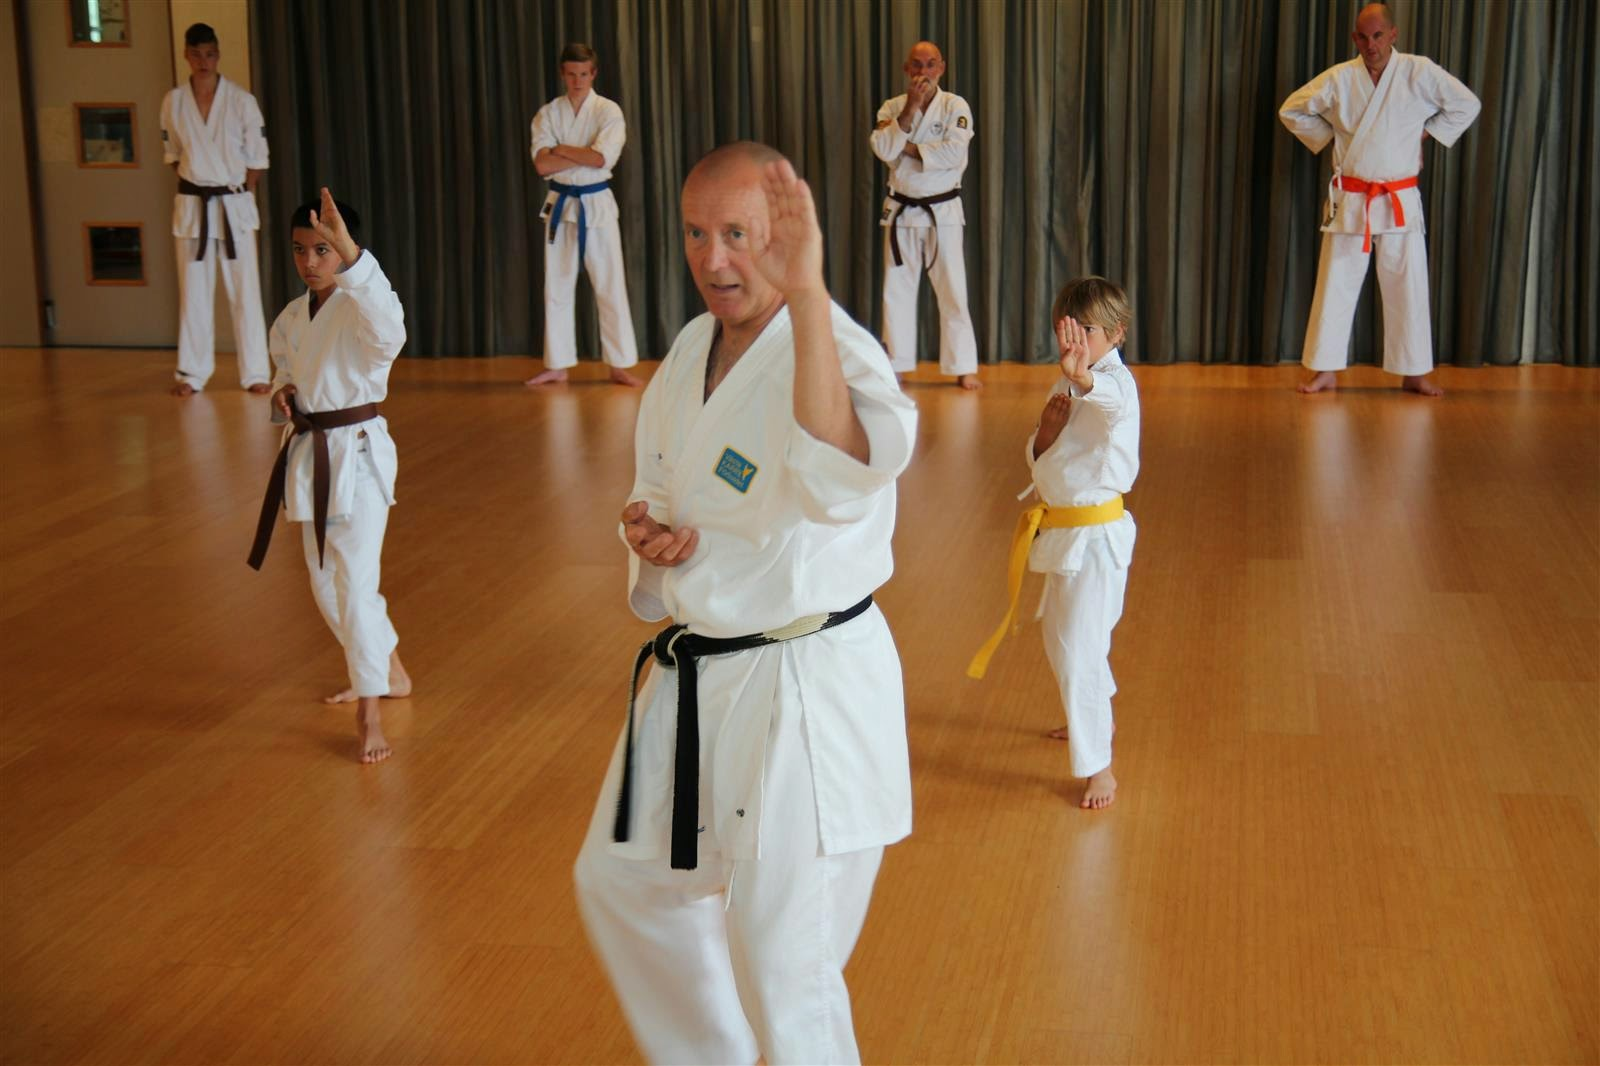 De Mix Budo: Trainingsweekend met Thomas Tössbrant